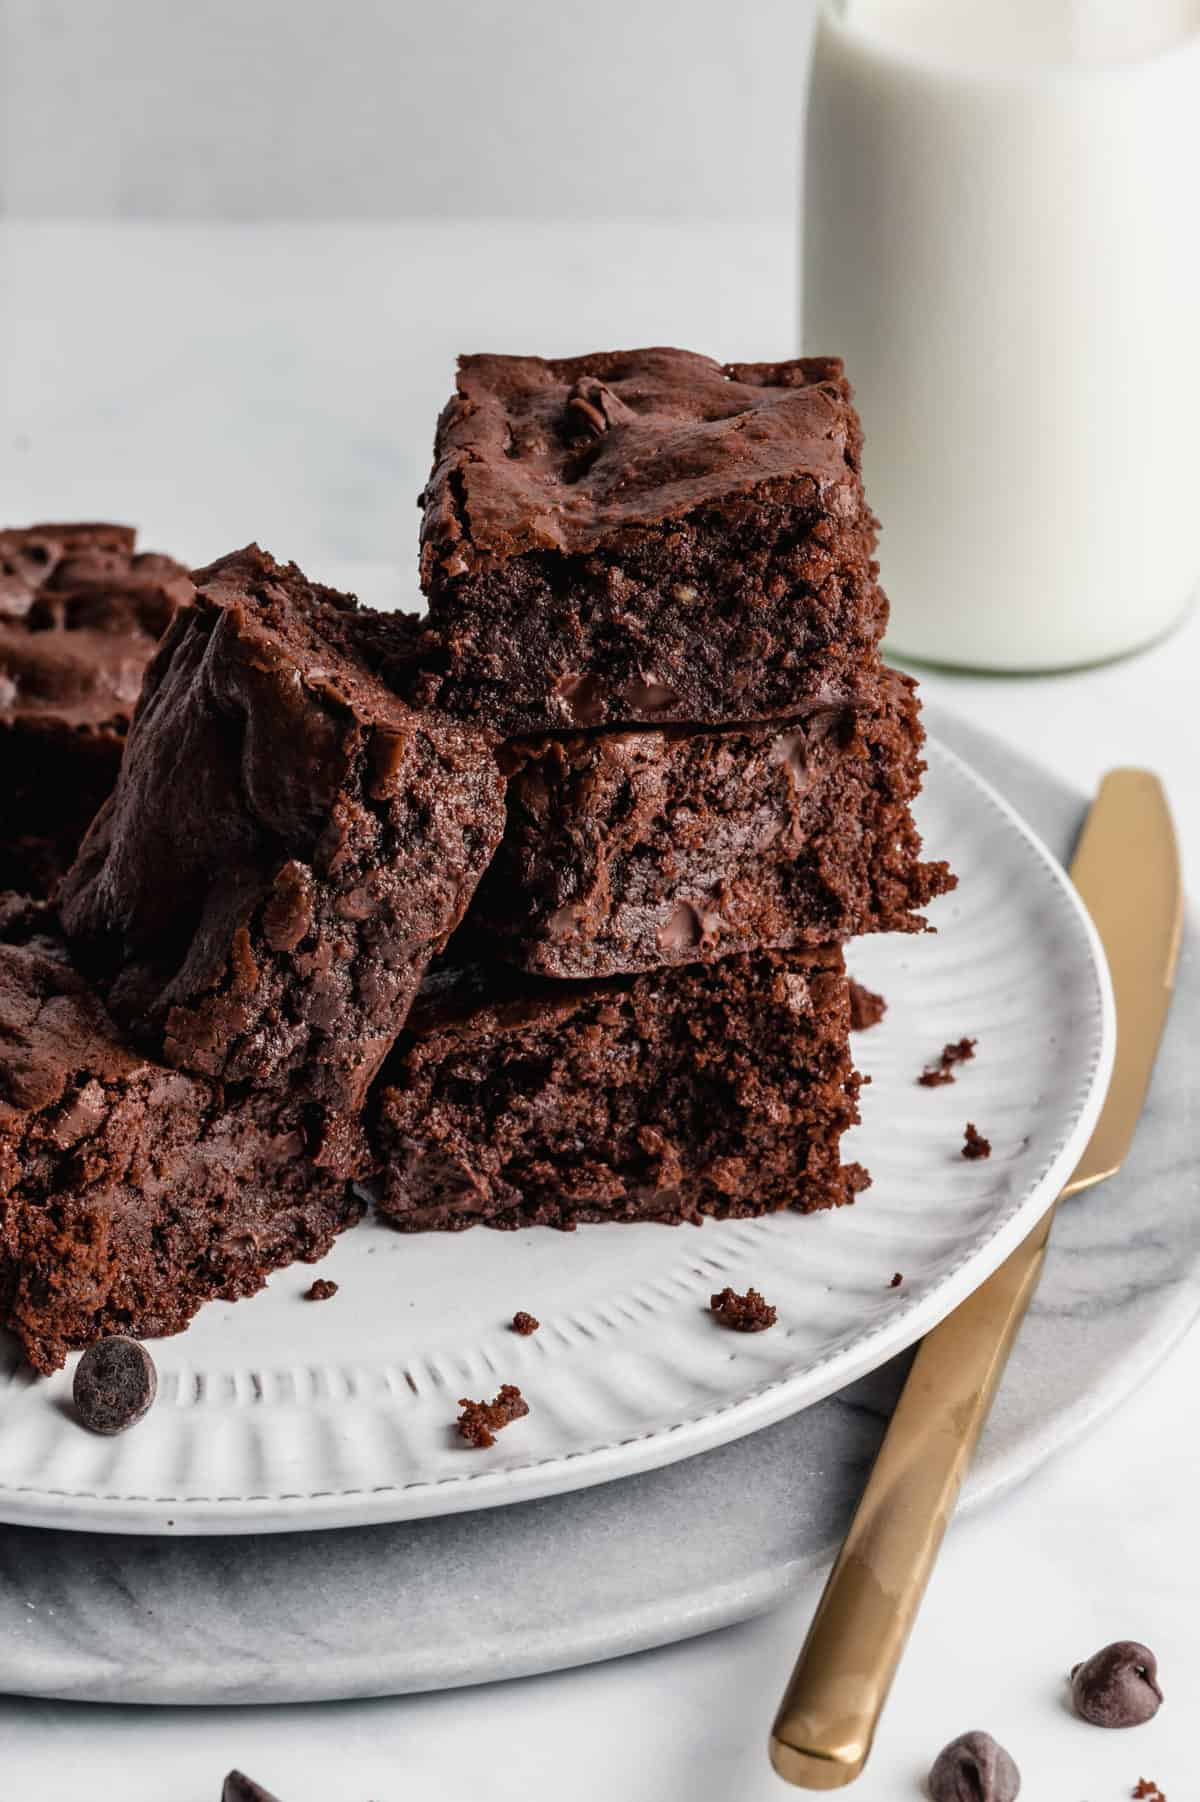 Brownies stacked on a plate with knife beside it.